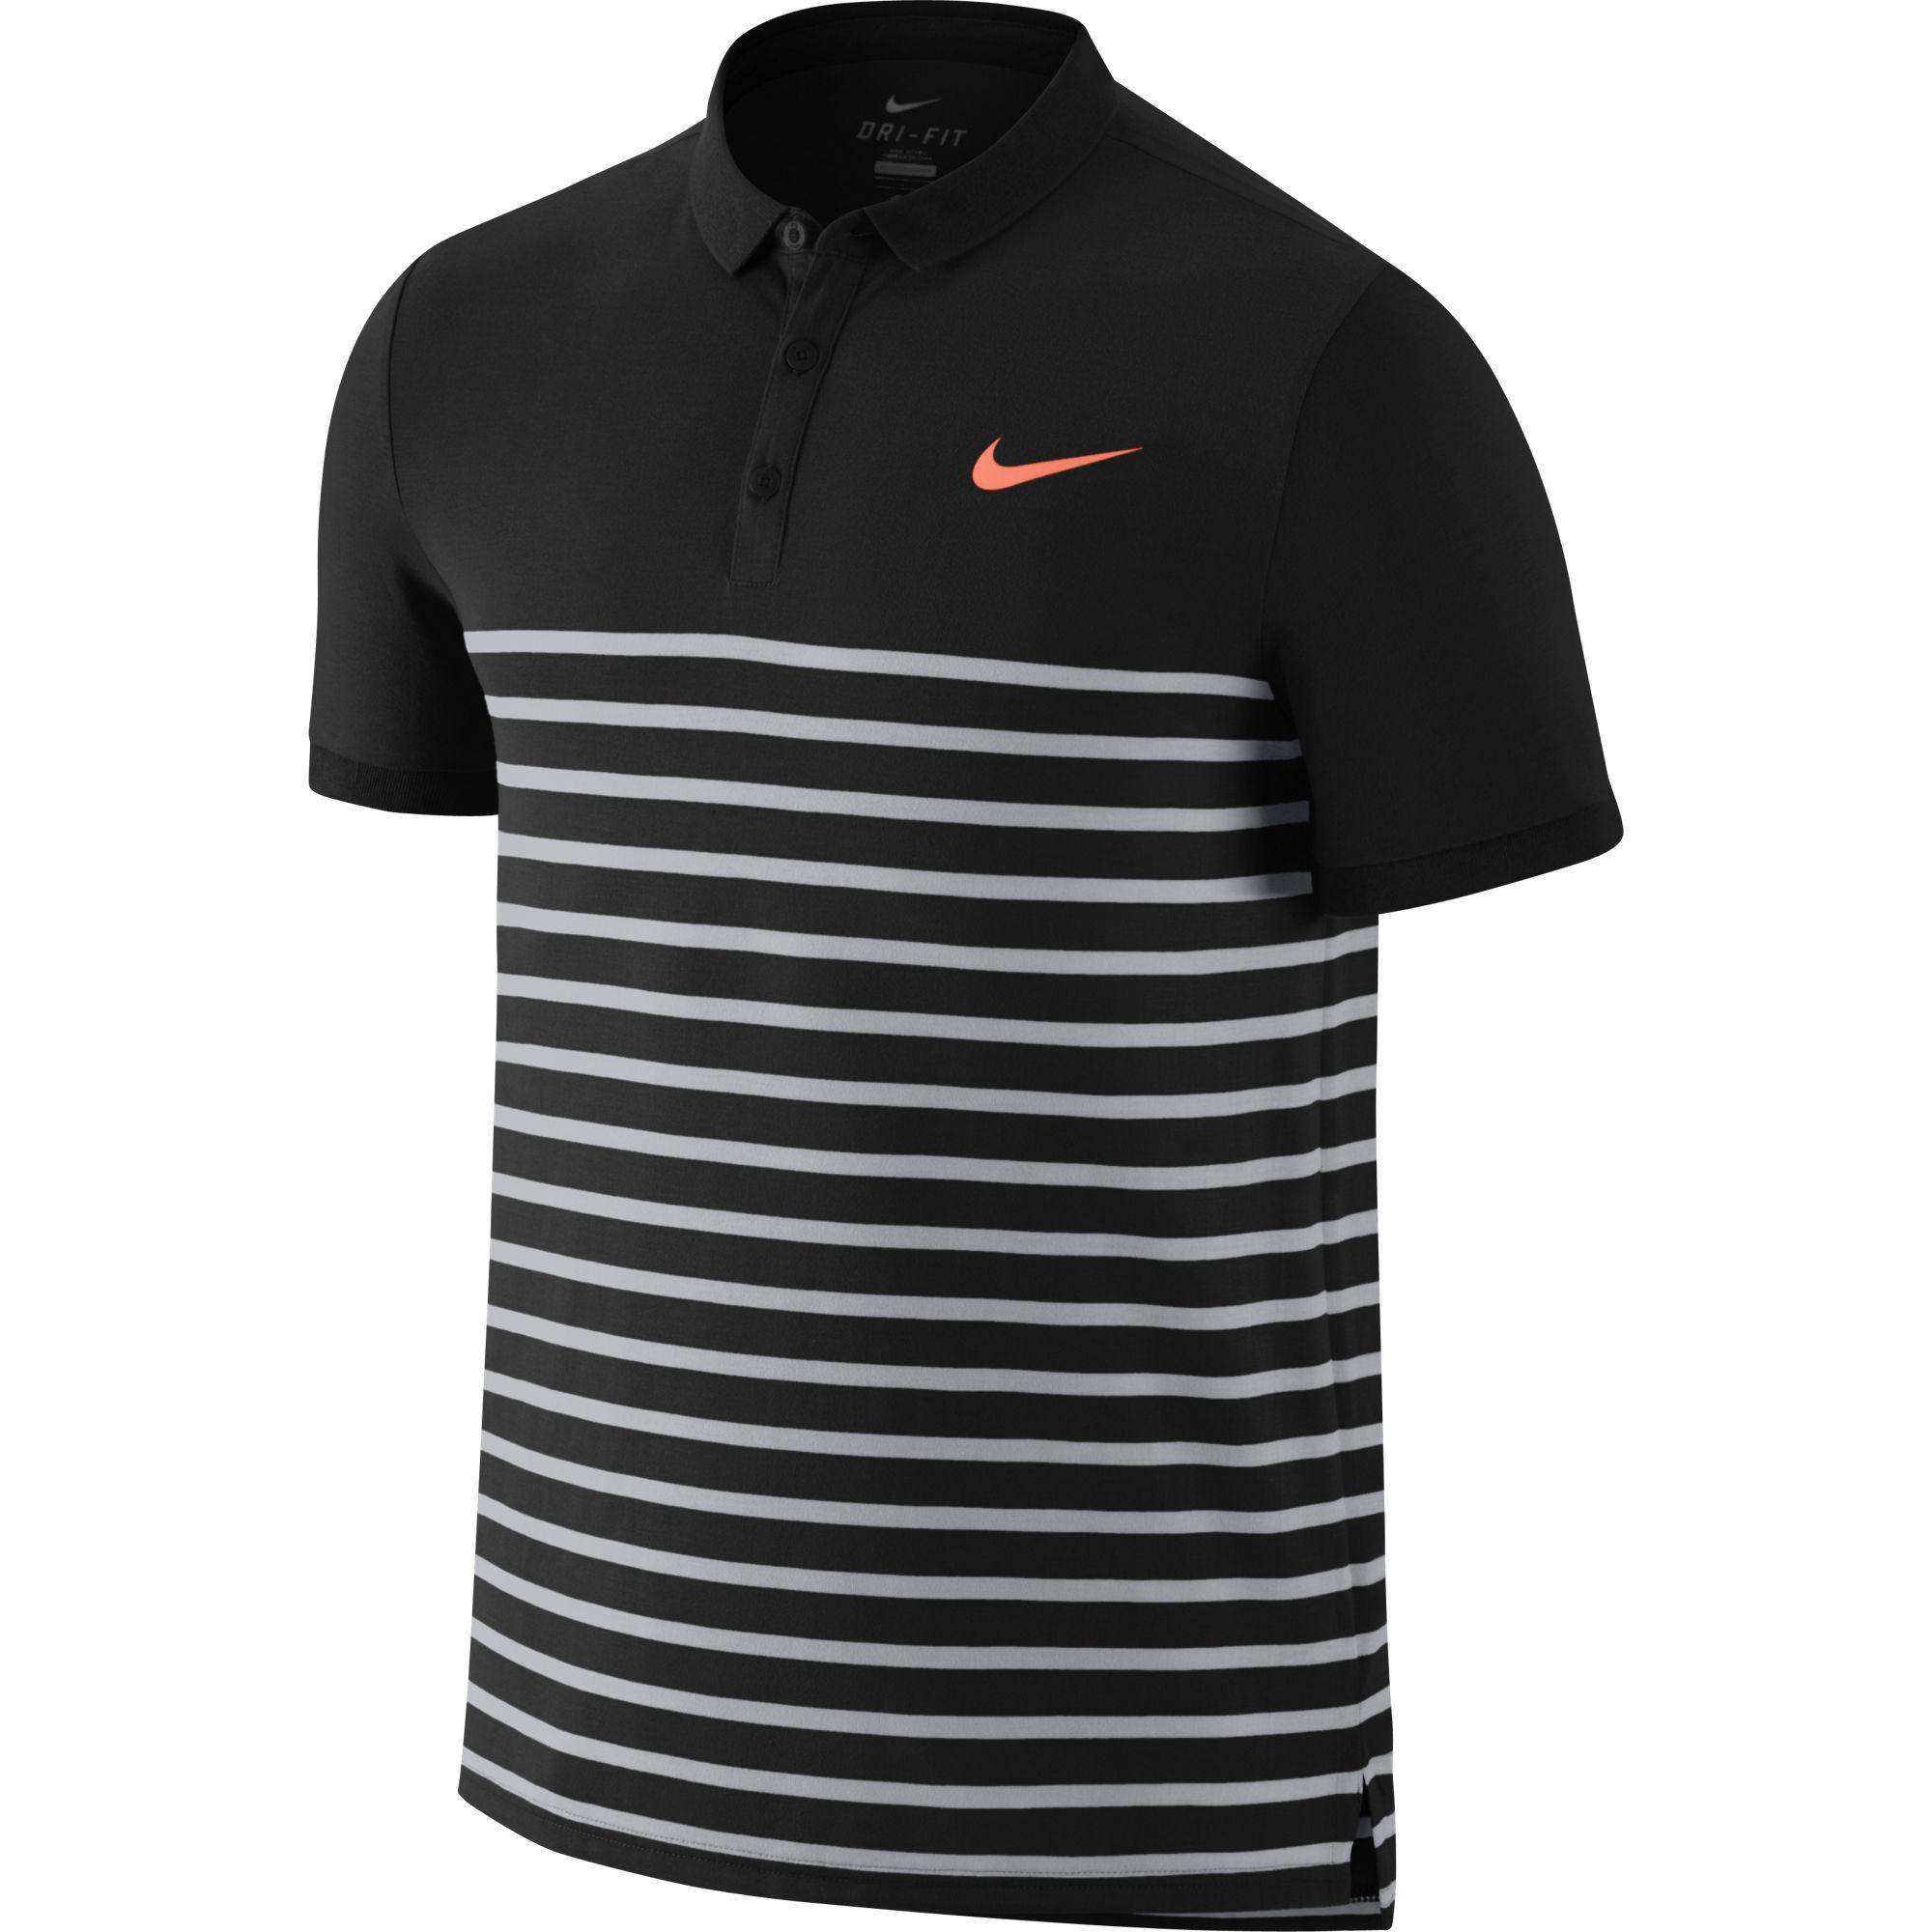 Nike Mens Advantage Dri-FIT Cool Polo - Black Hot Lava - Tennisnuts.com daff56fd4885